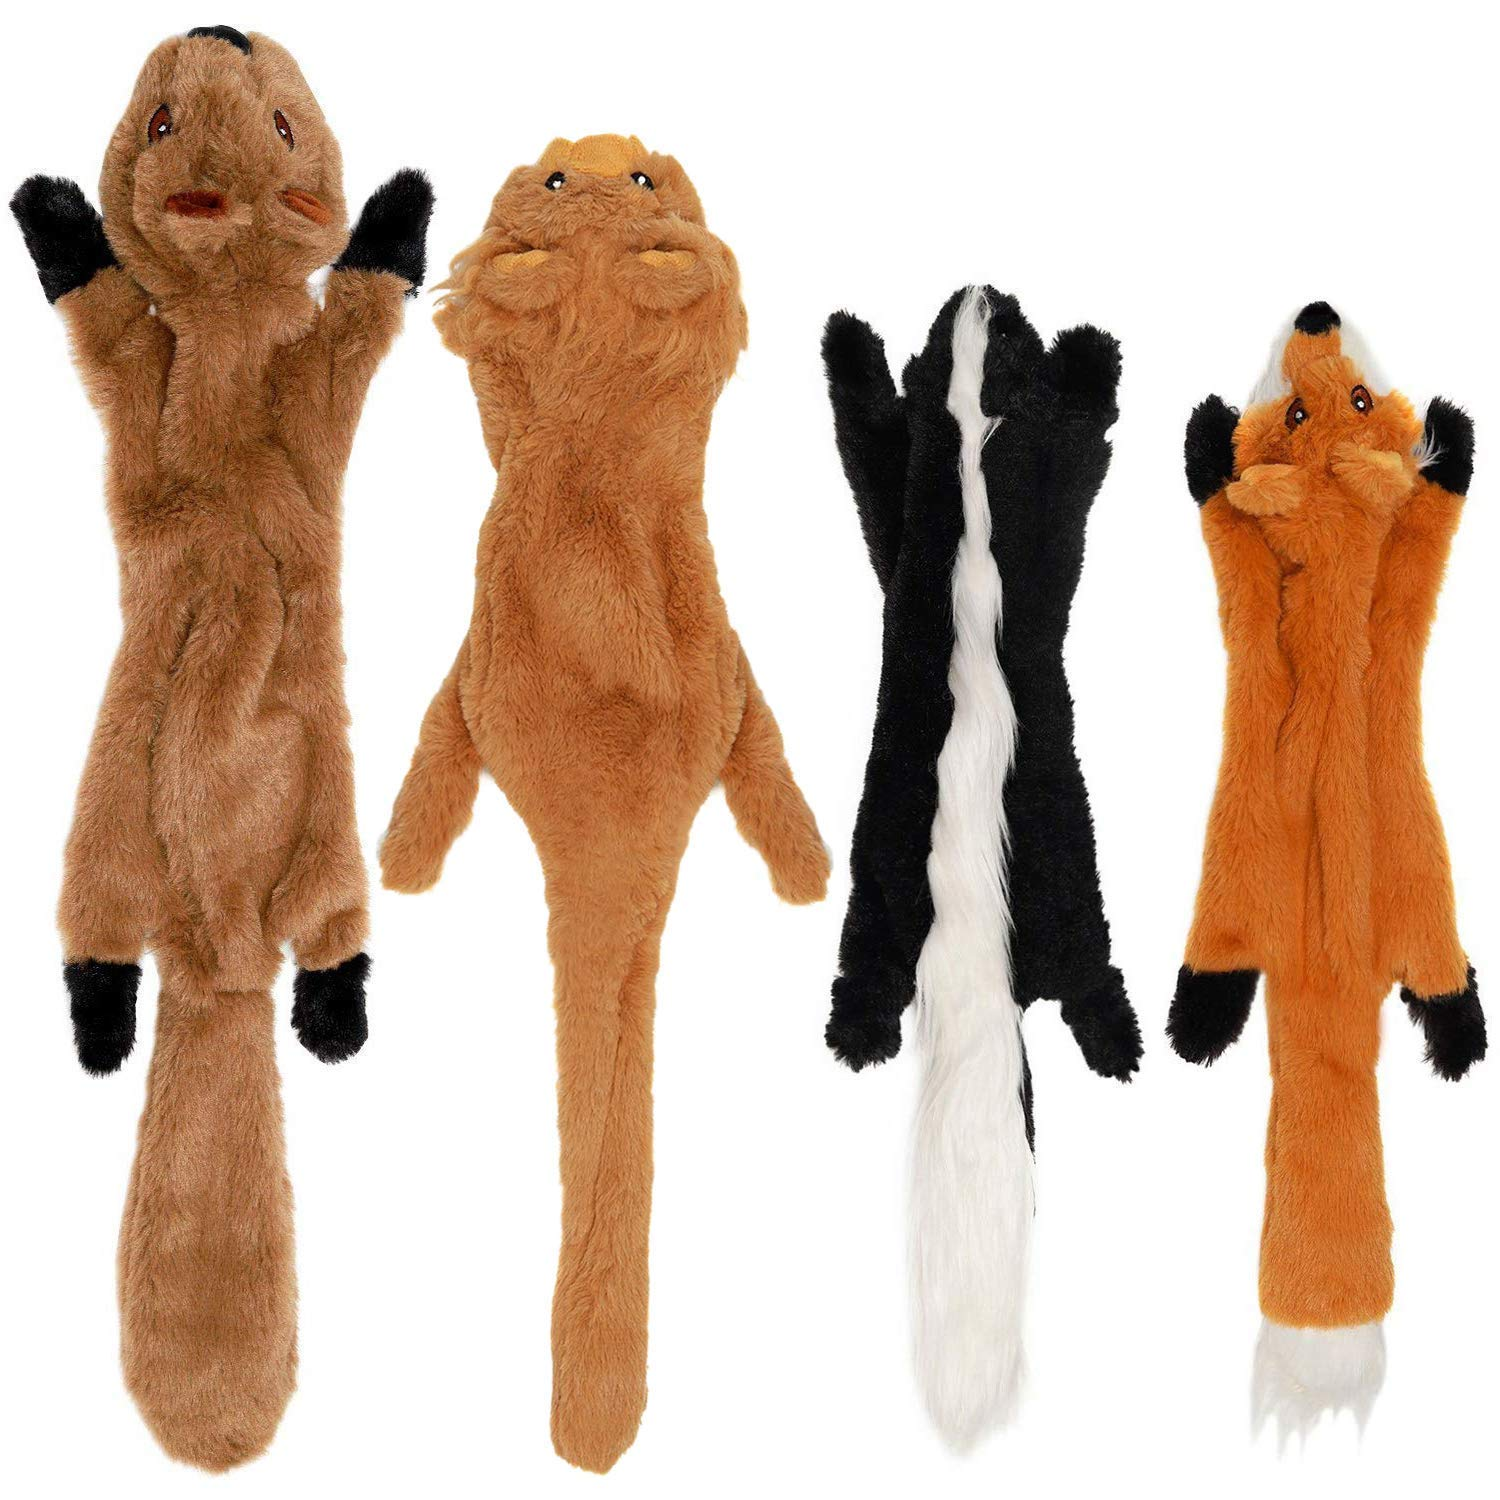 VVWEE No Stuffing Dog Toys with Squeakers, Durable Dog Squeaky Toys Unstuffed Dog Toys Set with Squirrel Fox Lion Skunk, Plush Chew Toys for Large Medium Small Dogs 4 Pack, 24-Inch